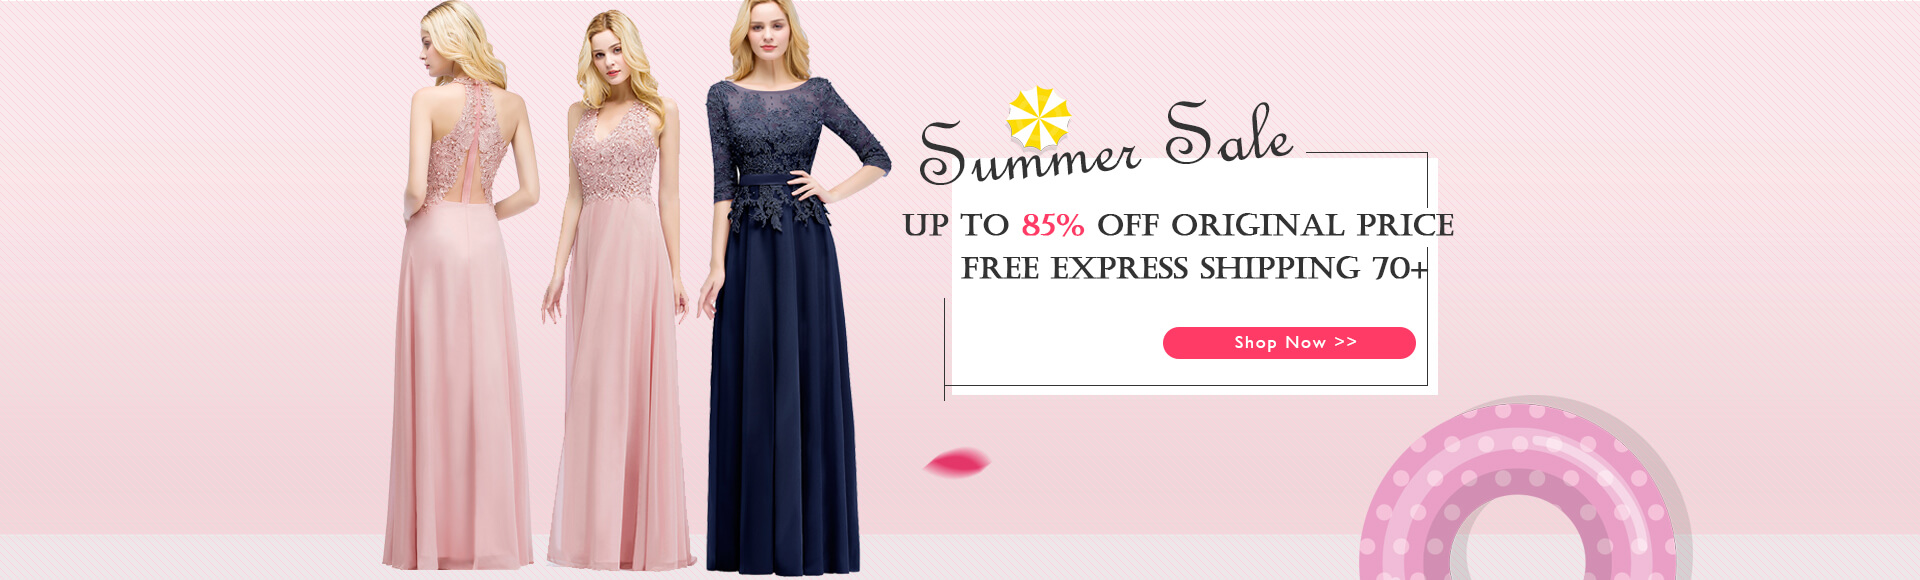 evening dresses summer sale